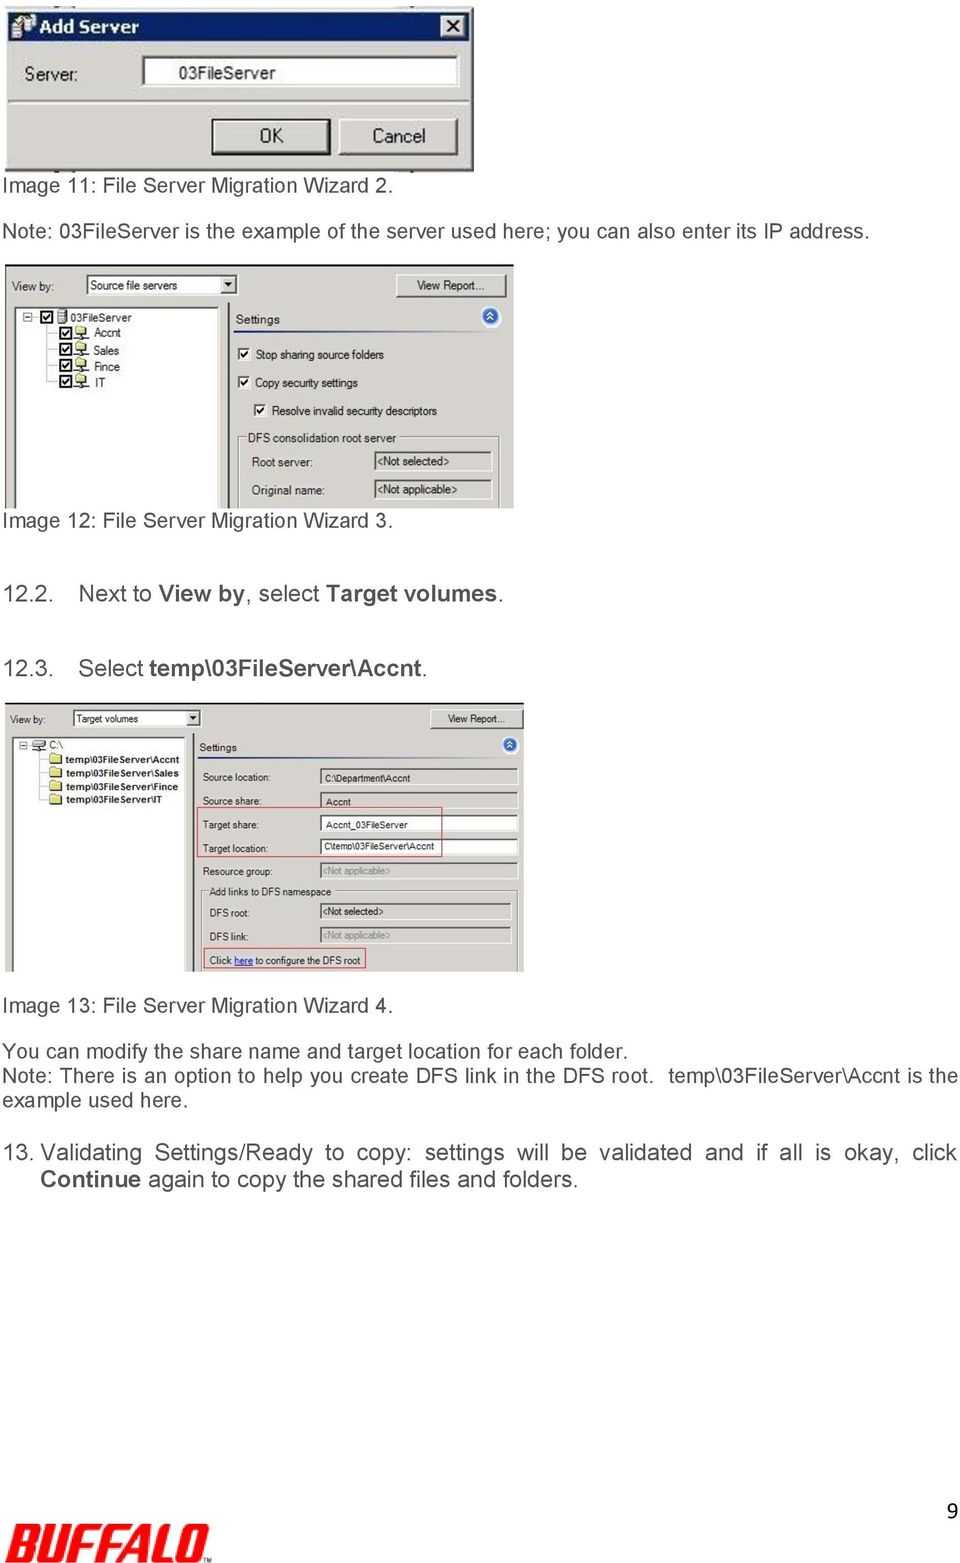 Image 13: File Server Migration Wizard 4. You can modify the share name and target location for each folder.